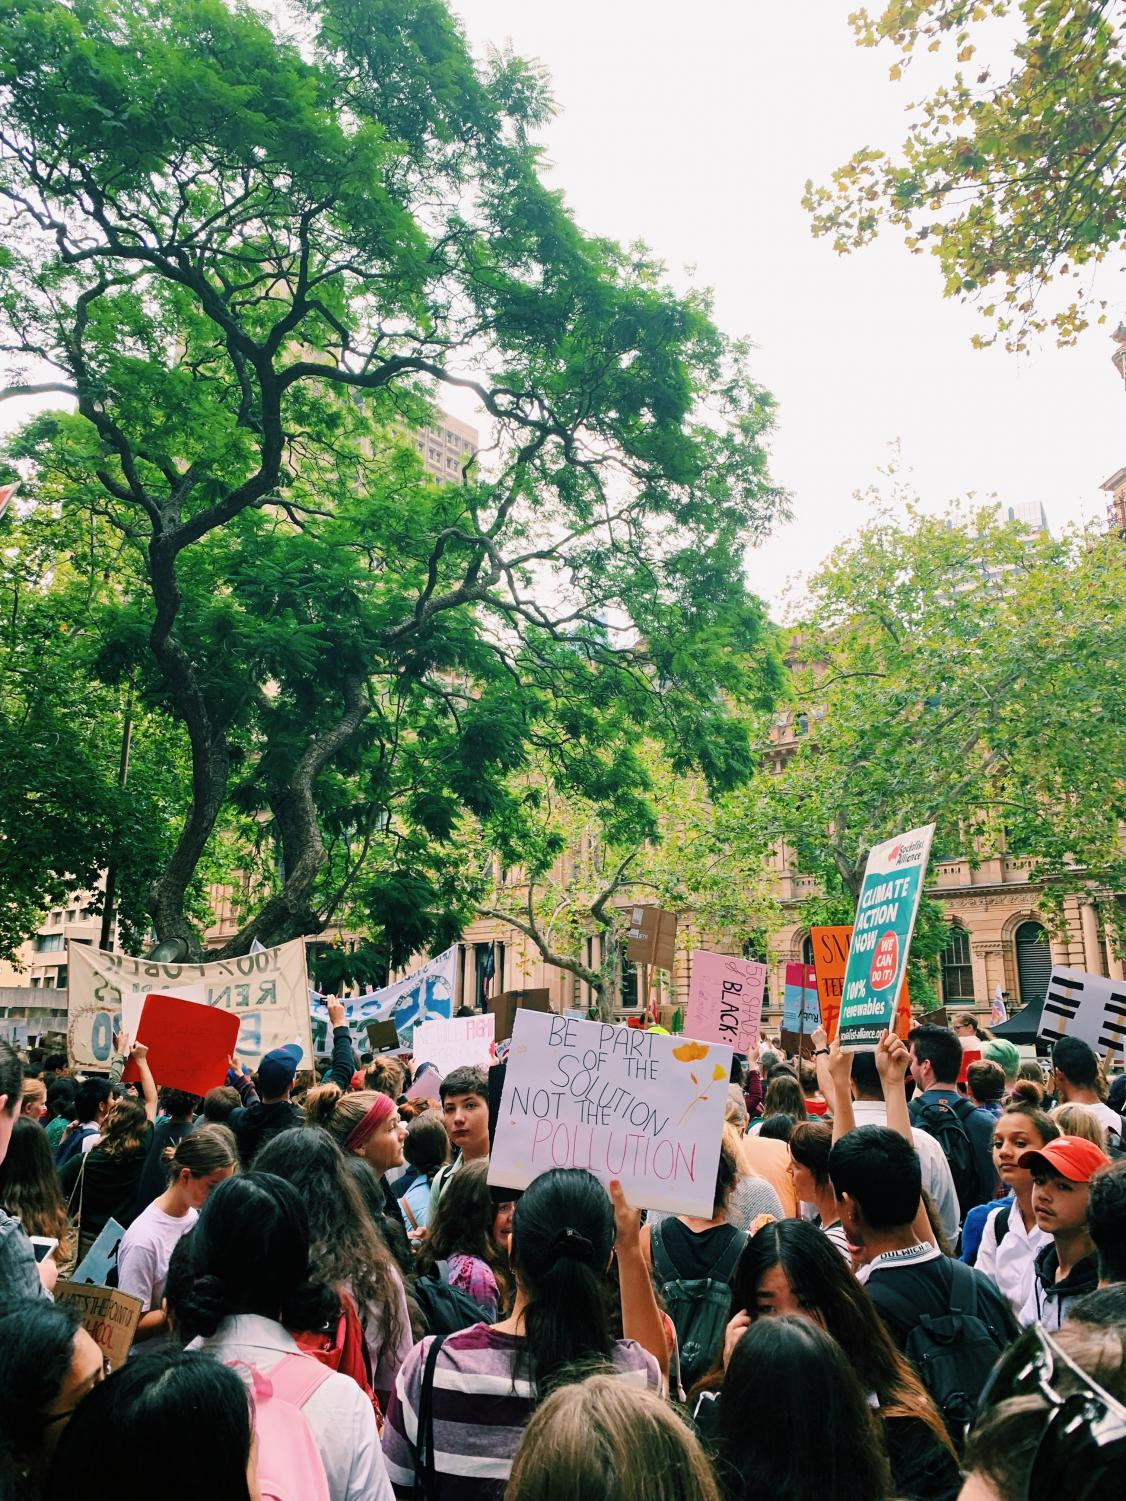 Thousands of students converged on Sydney's Town Hall on March 15 calling for climate action.